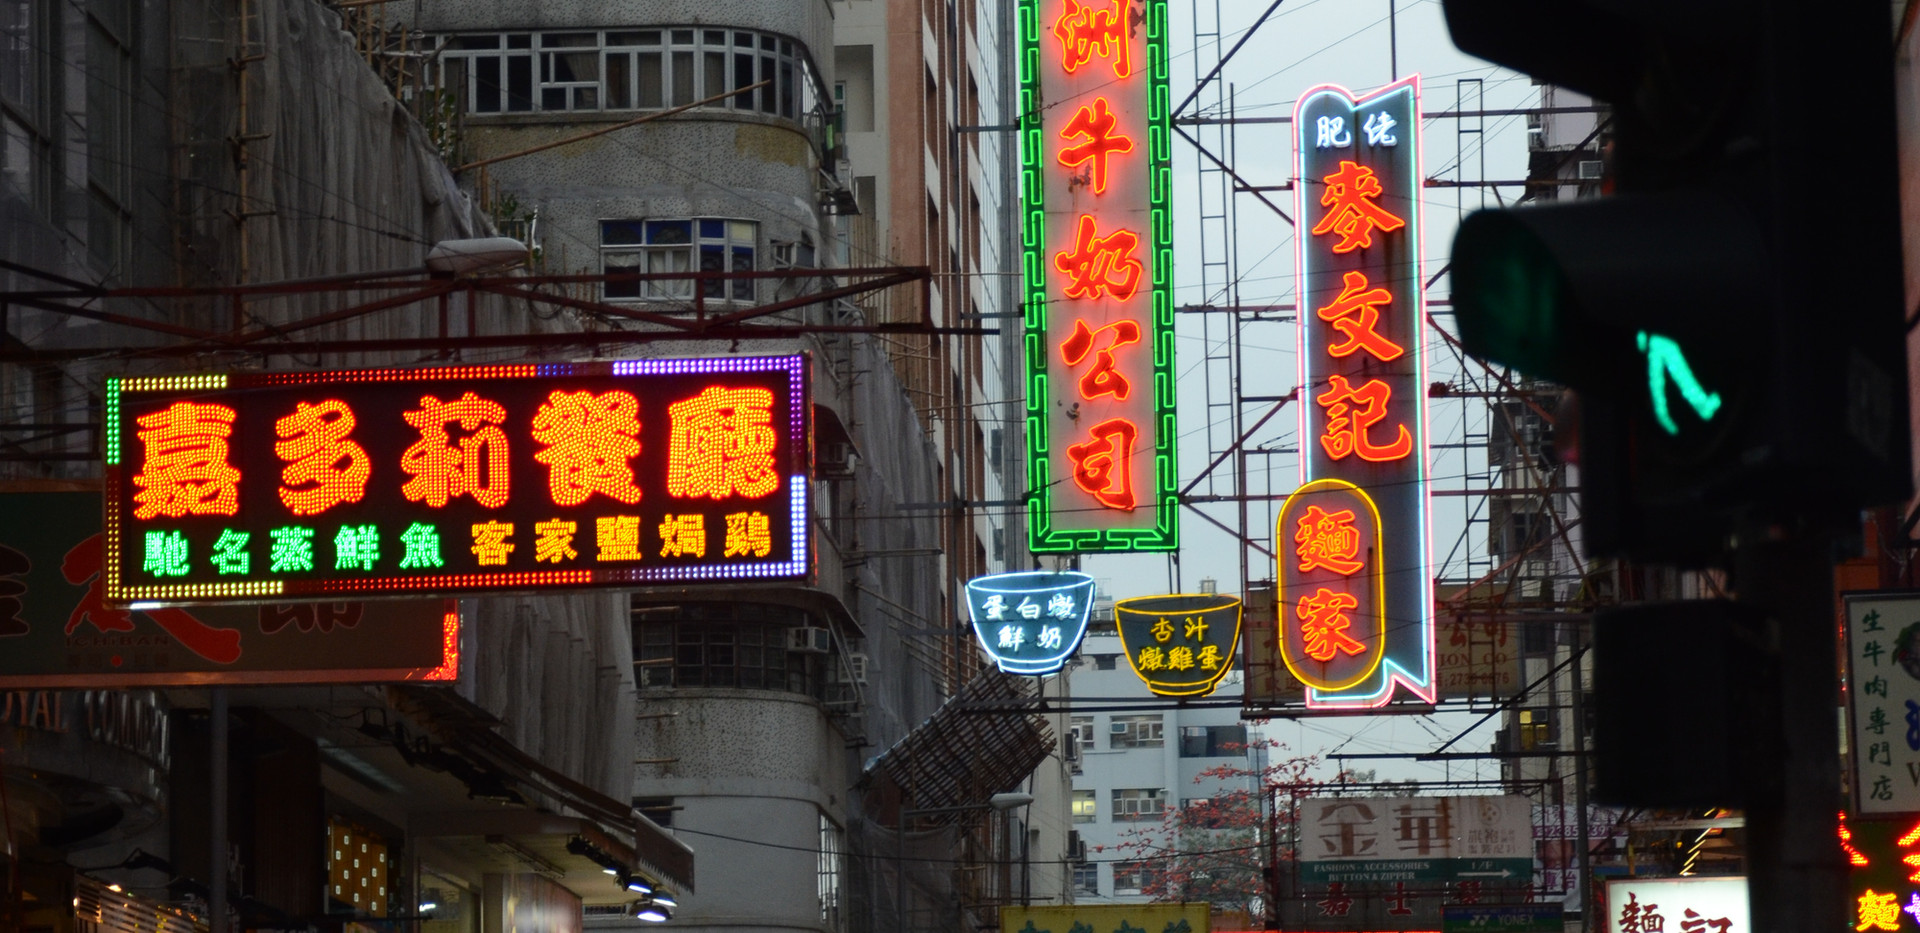 Neon signs in Kowloon